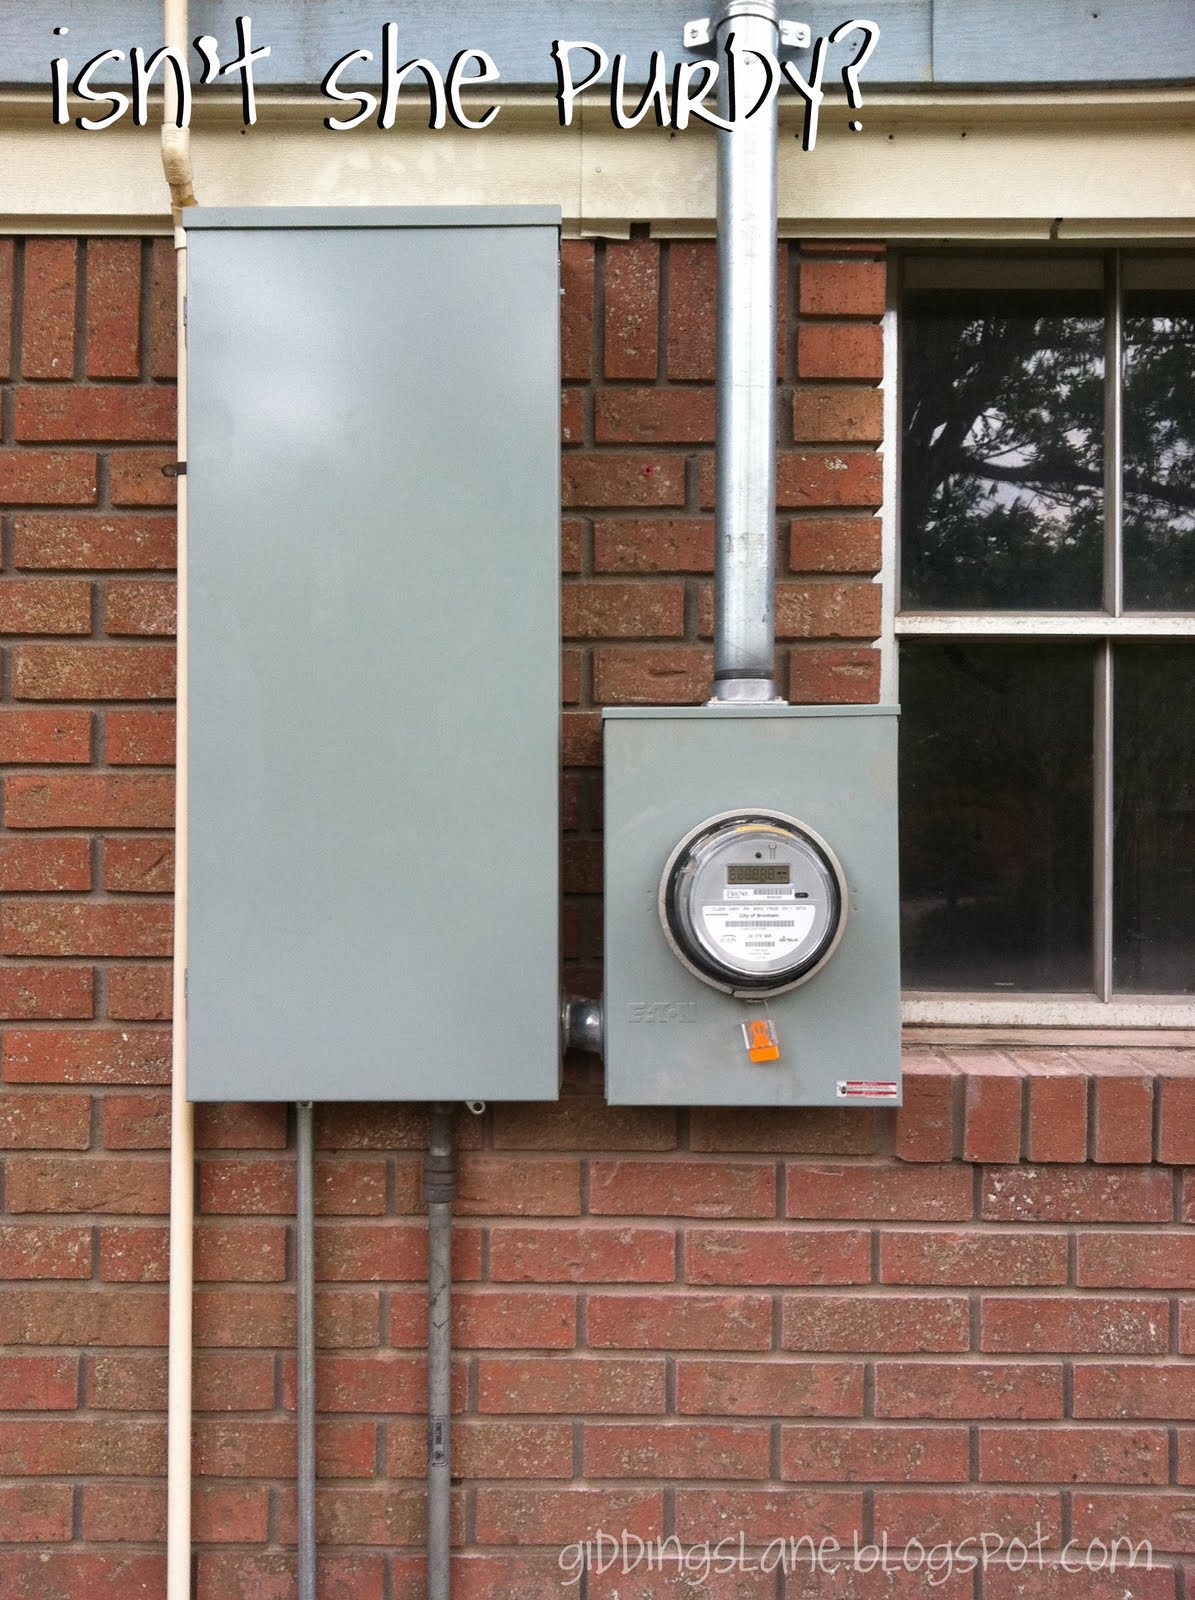 Magnificent Residential Electrical Boxes Pictures Inspiration ...